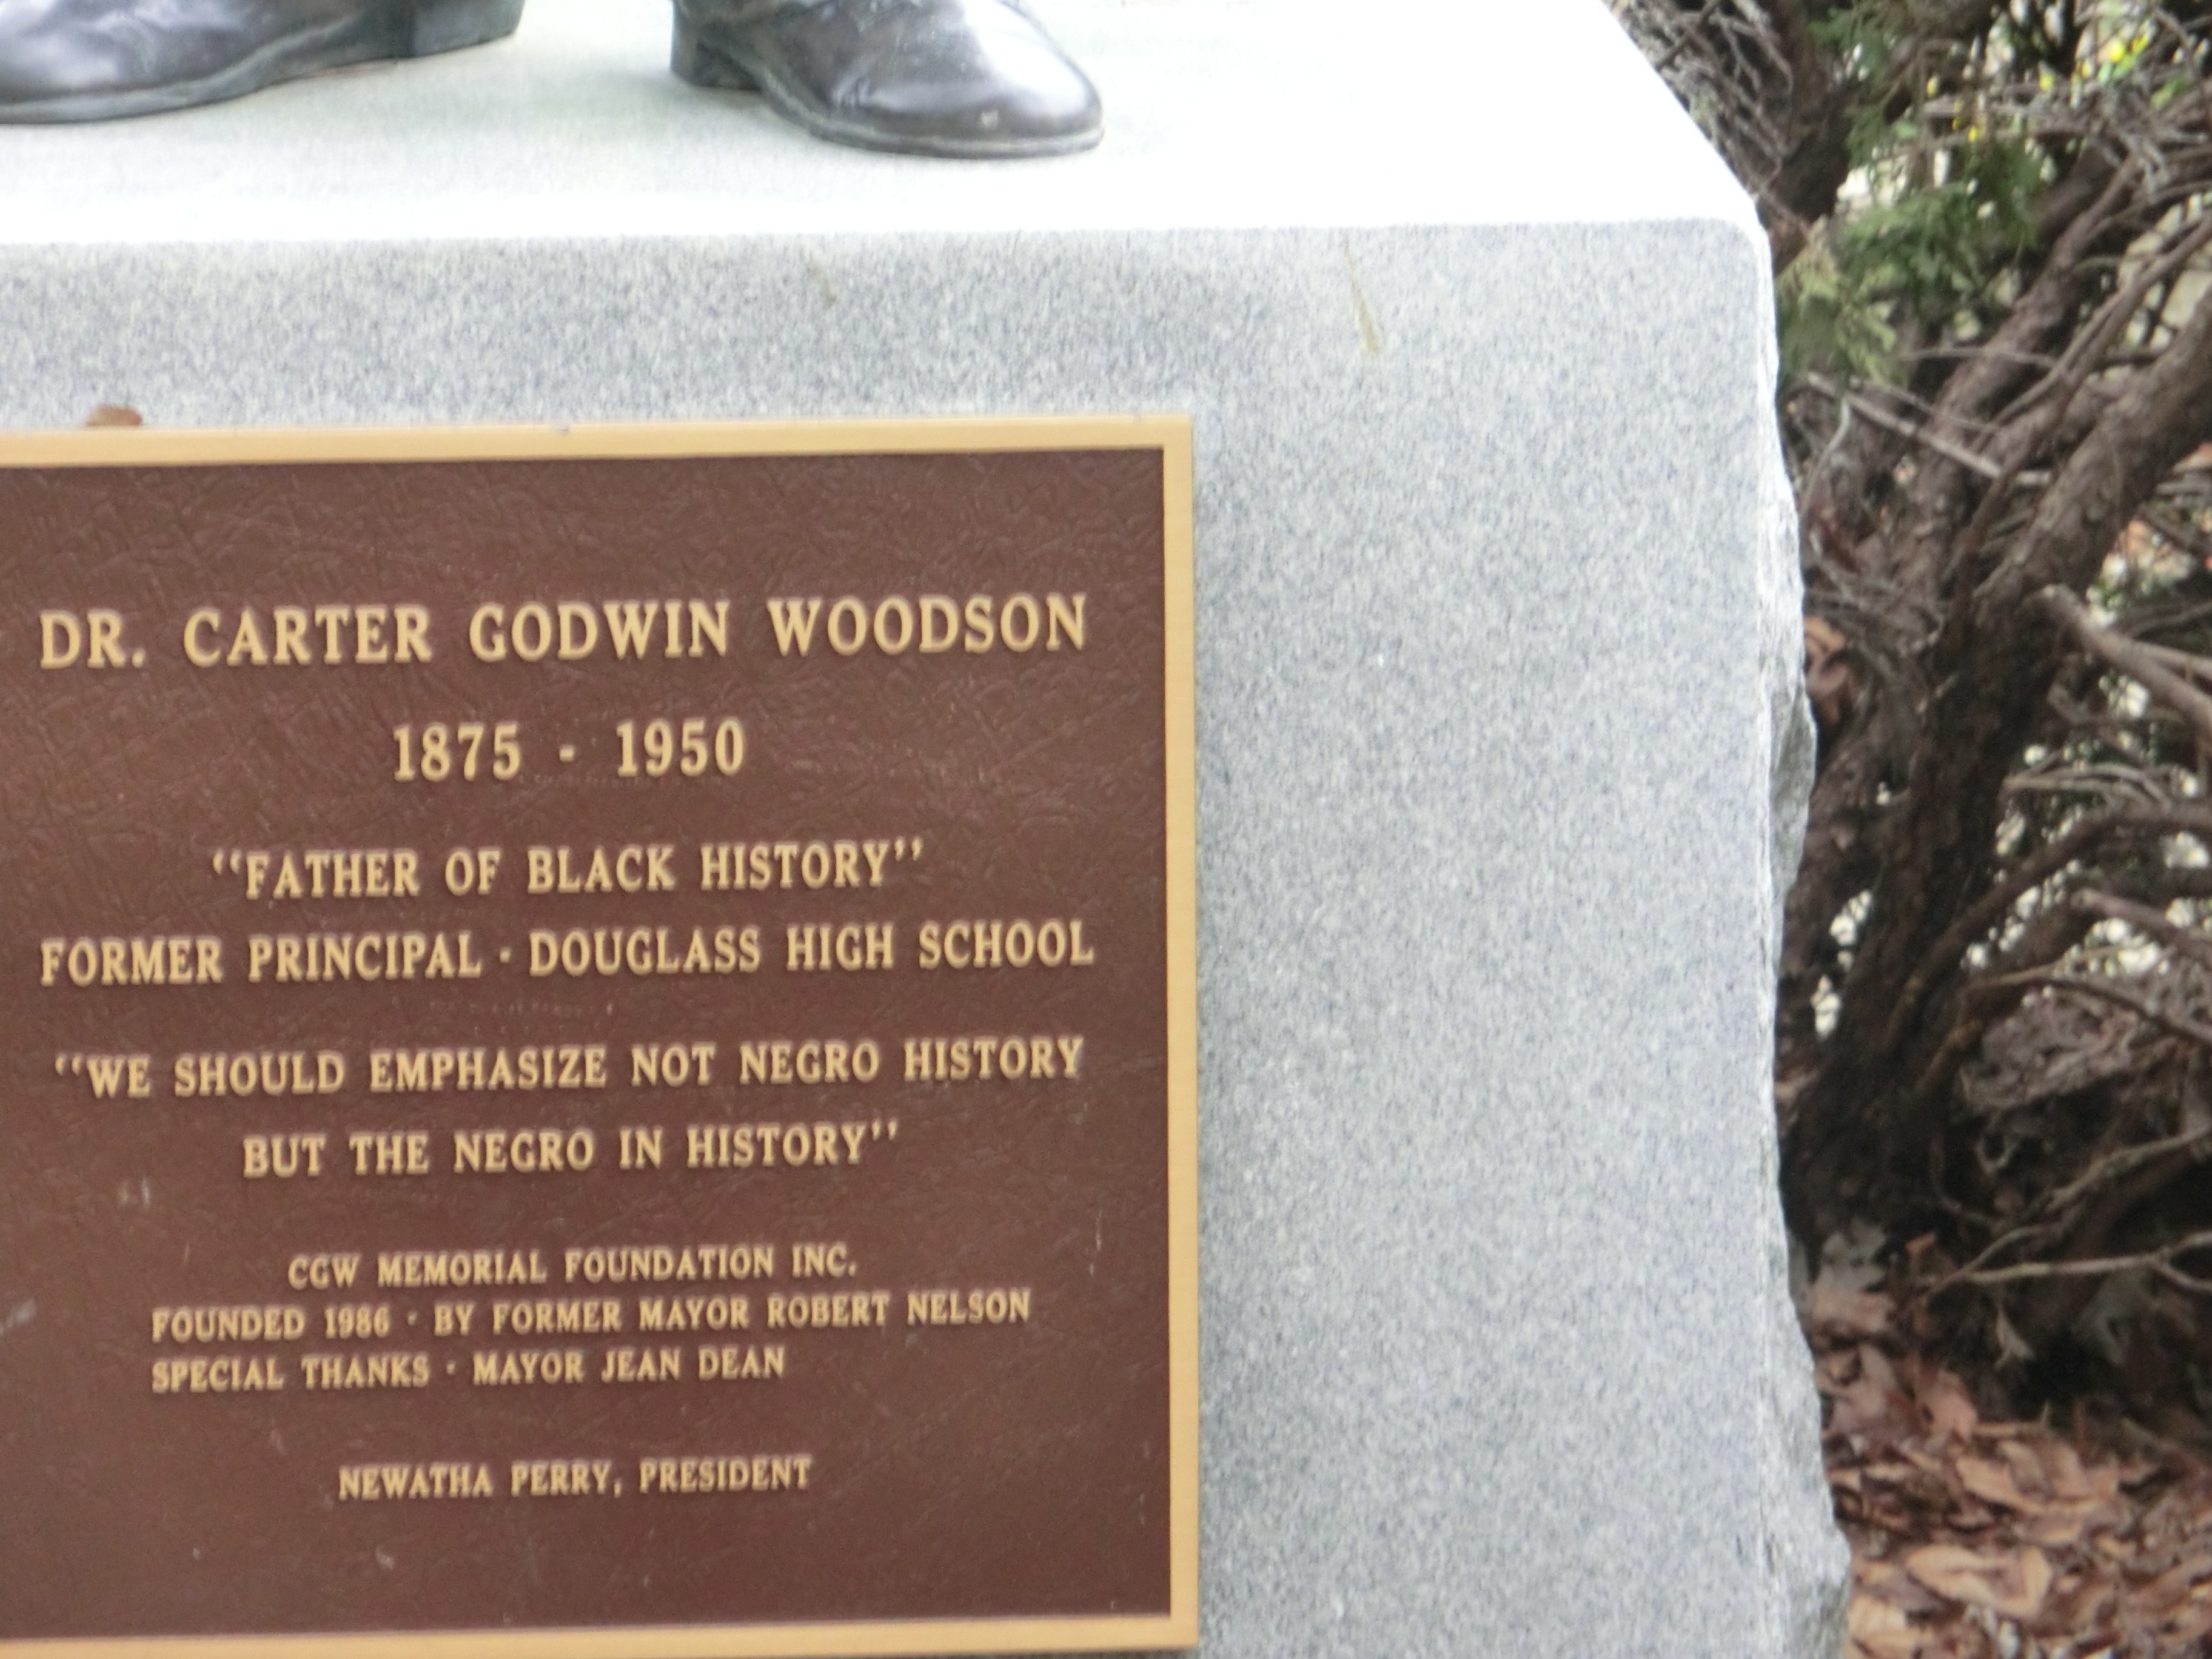 Carter Godwin Woodson plaque at the base of the statue